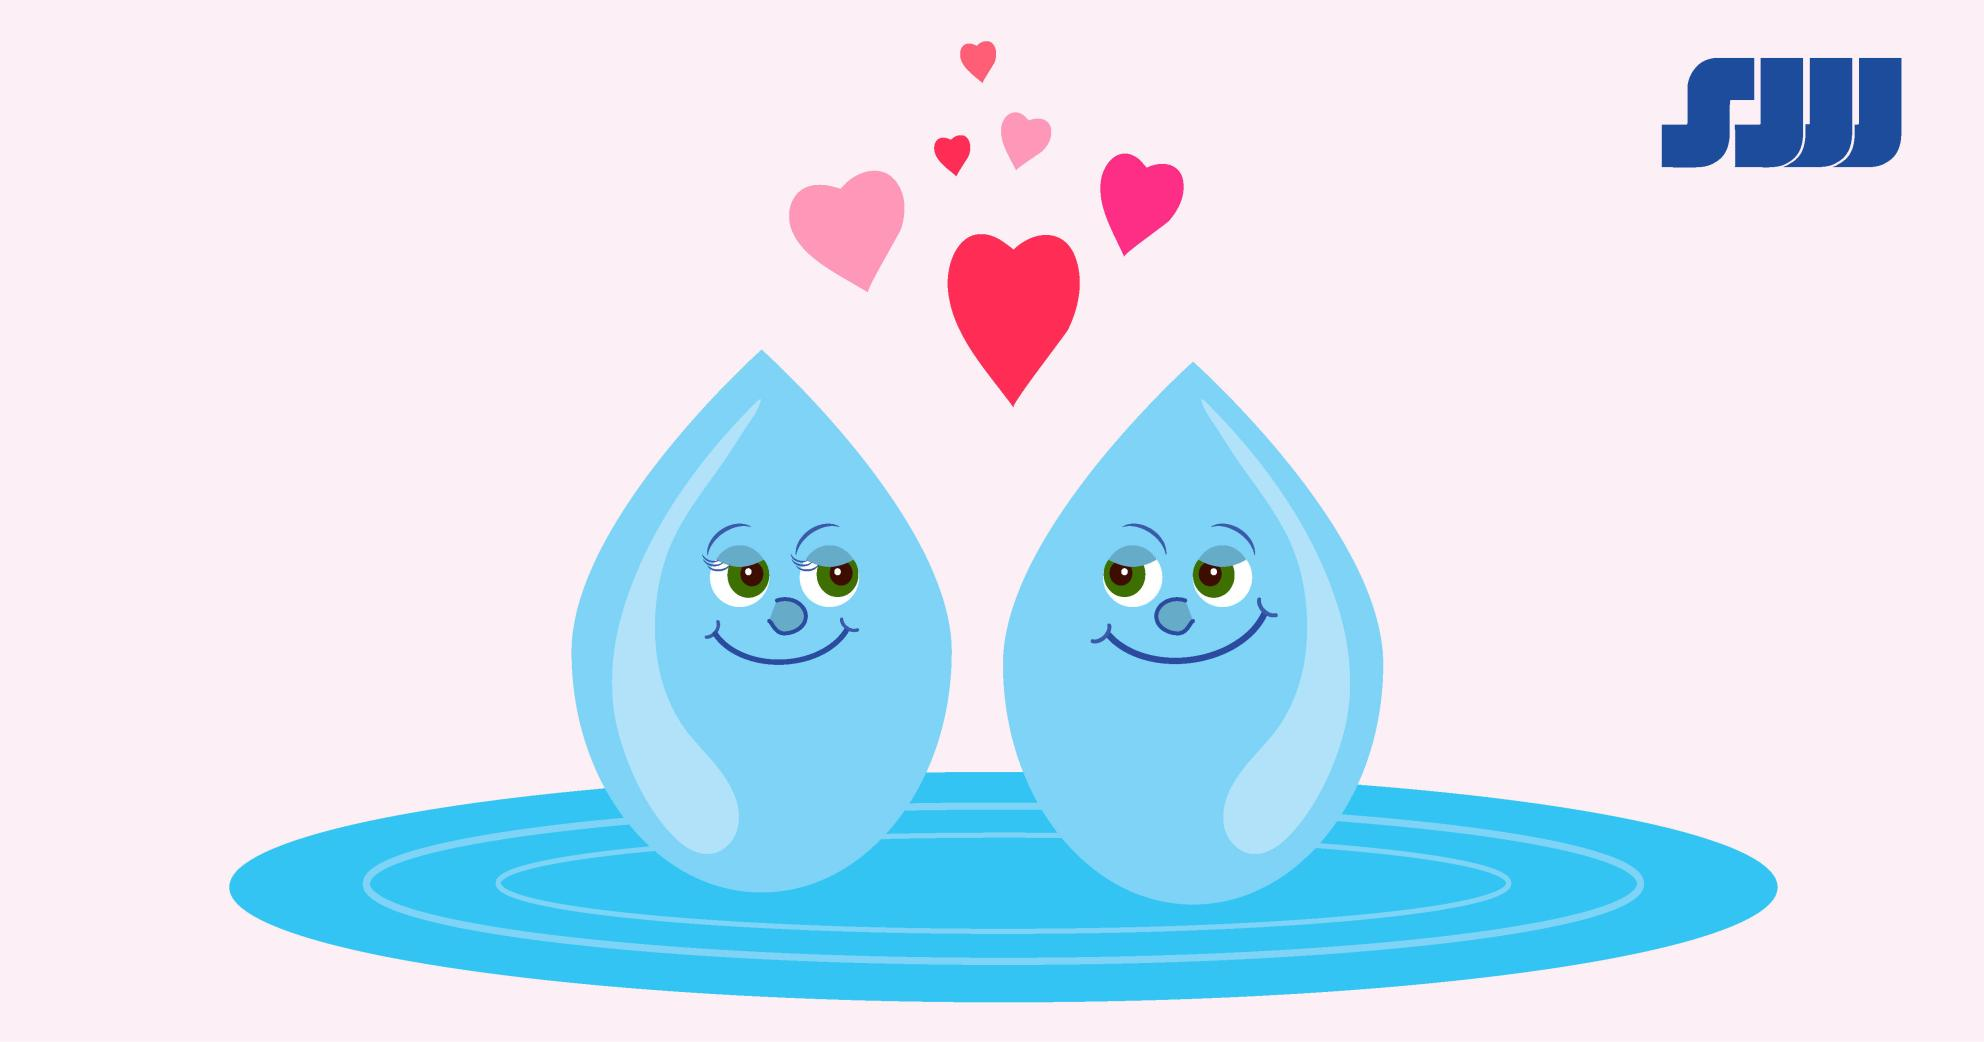 Cartoon image of two smiling water drops looking at each other with hearts rising between them